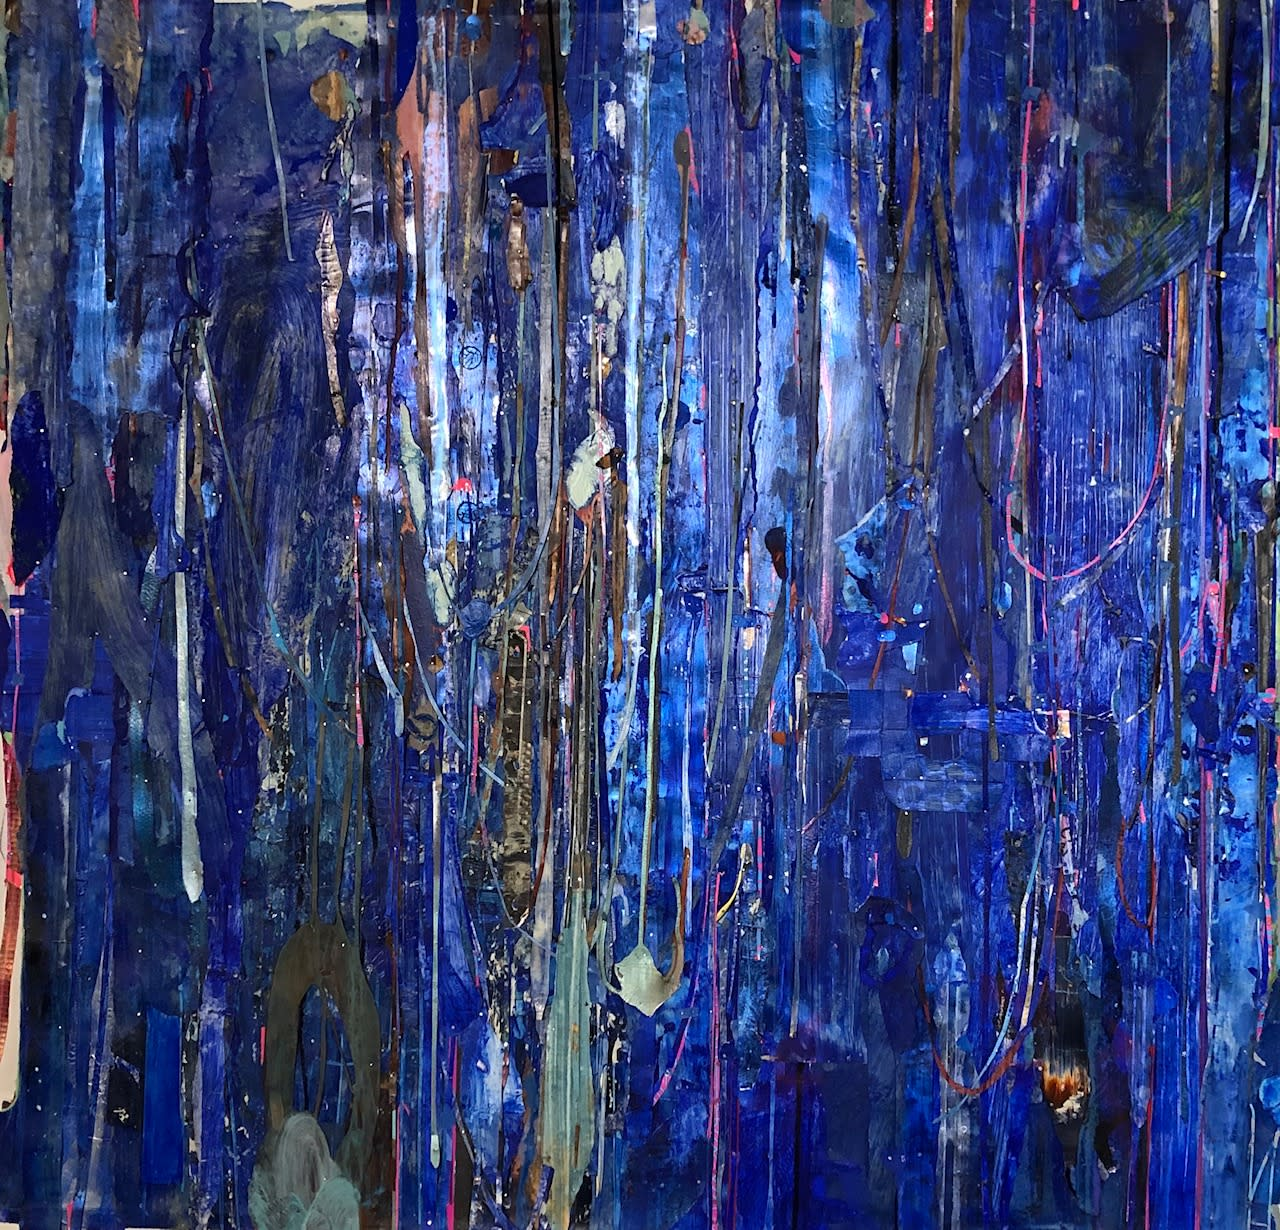 Composition in blue dzbmxc